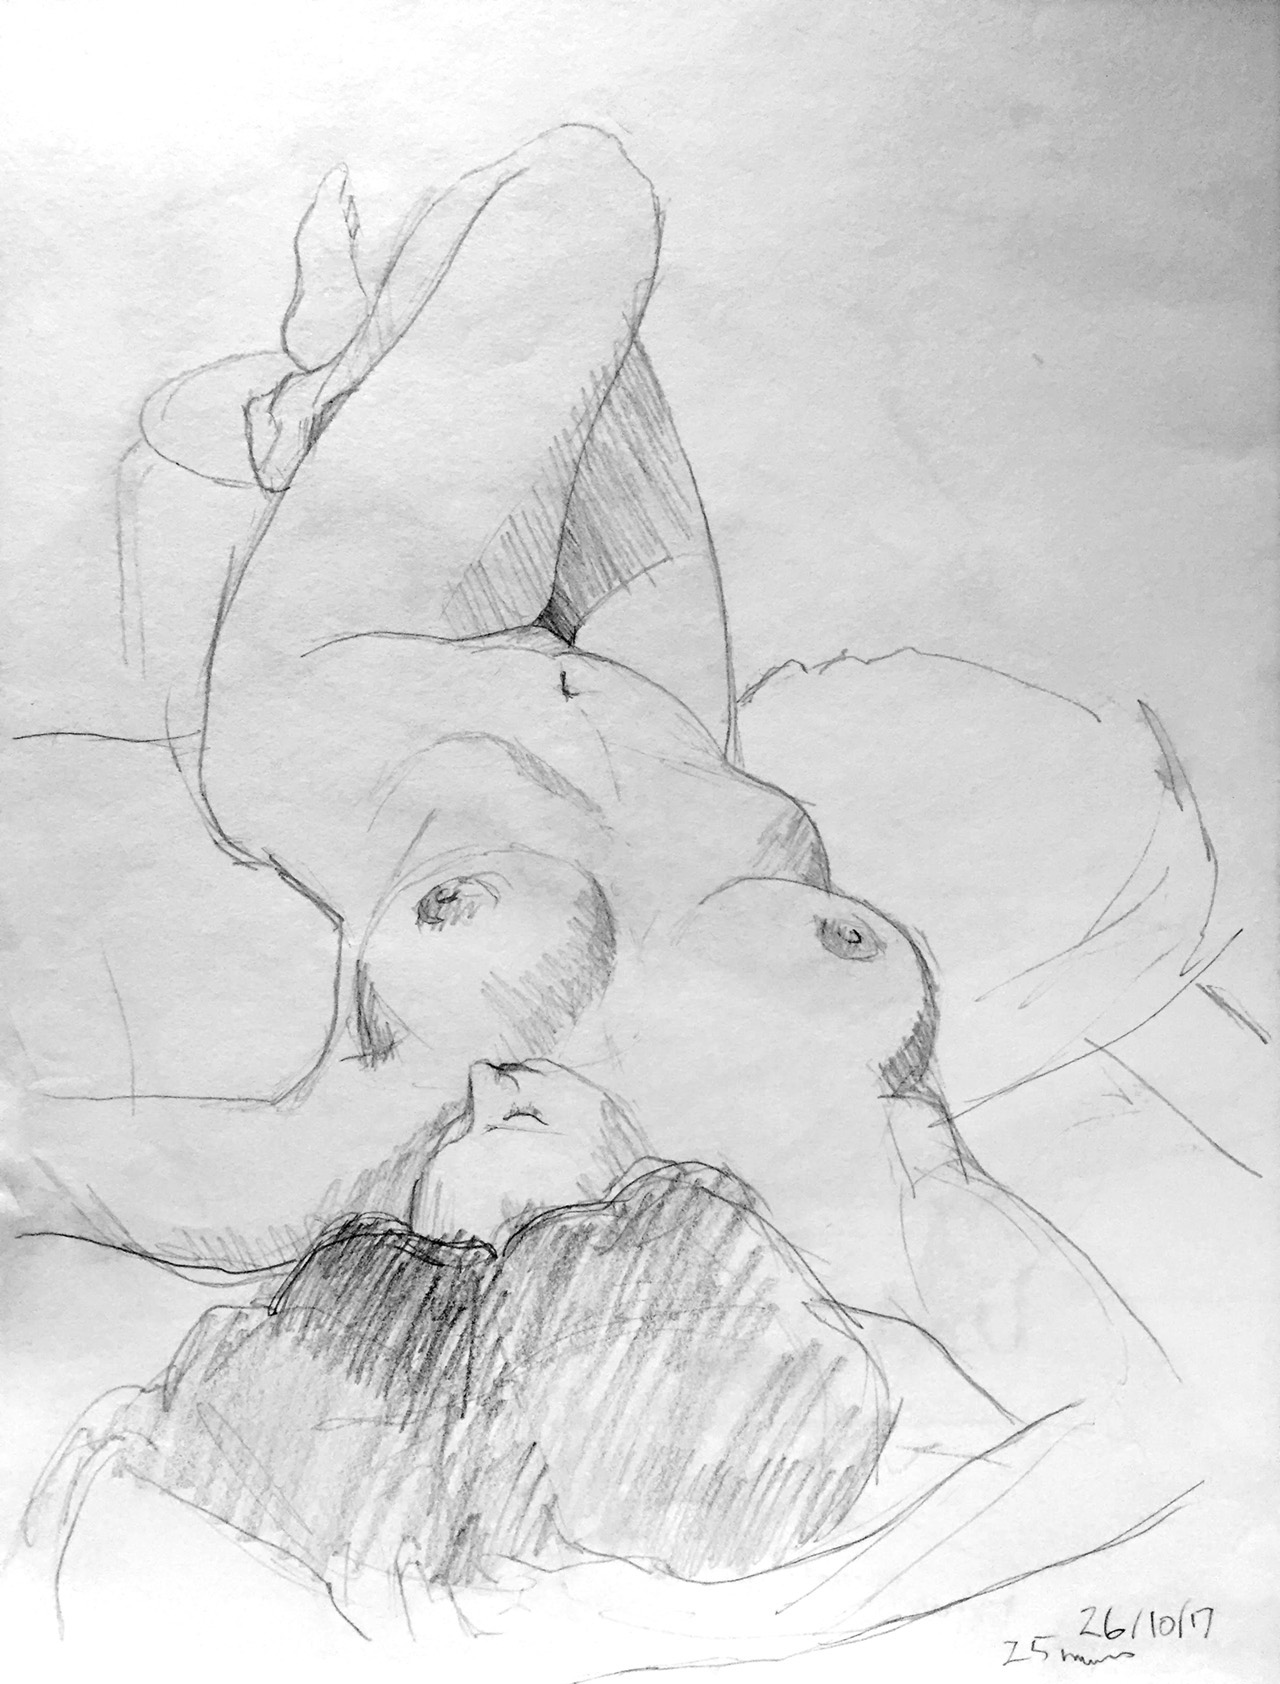 Life Drawing Sketch 1 Session 26/10/17